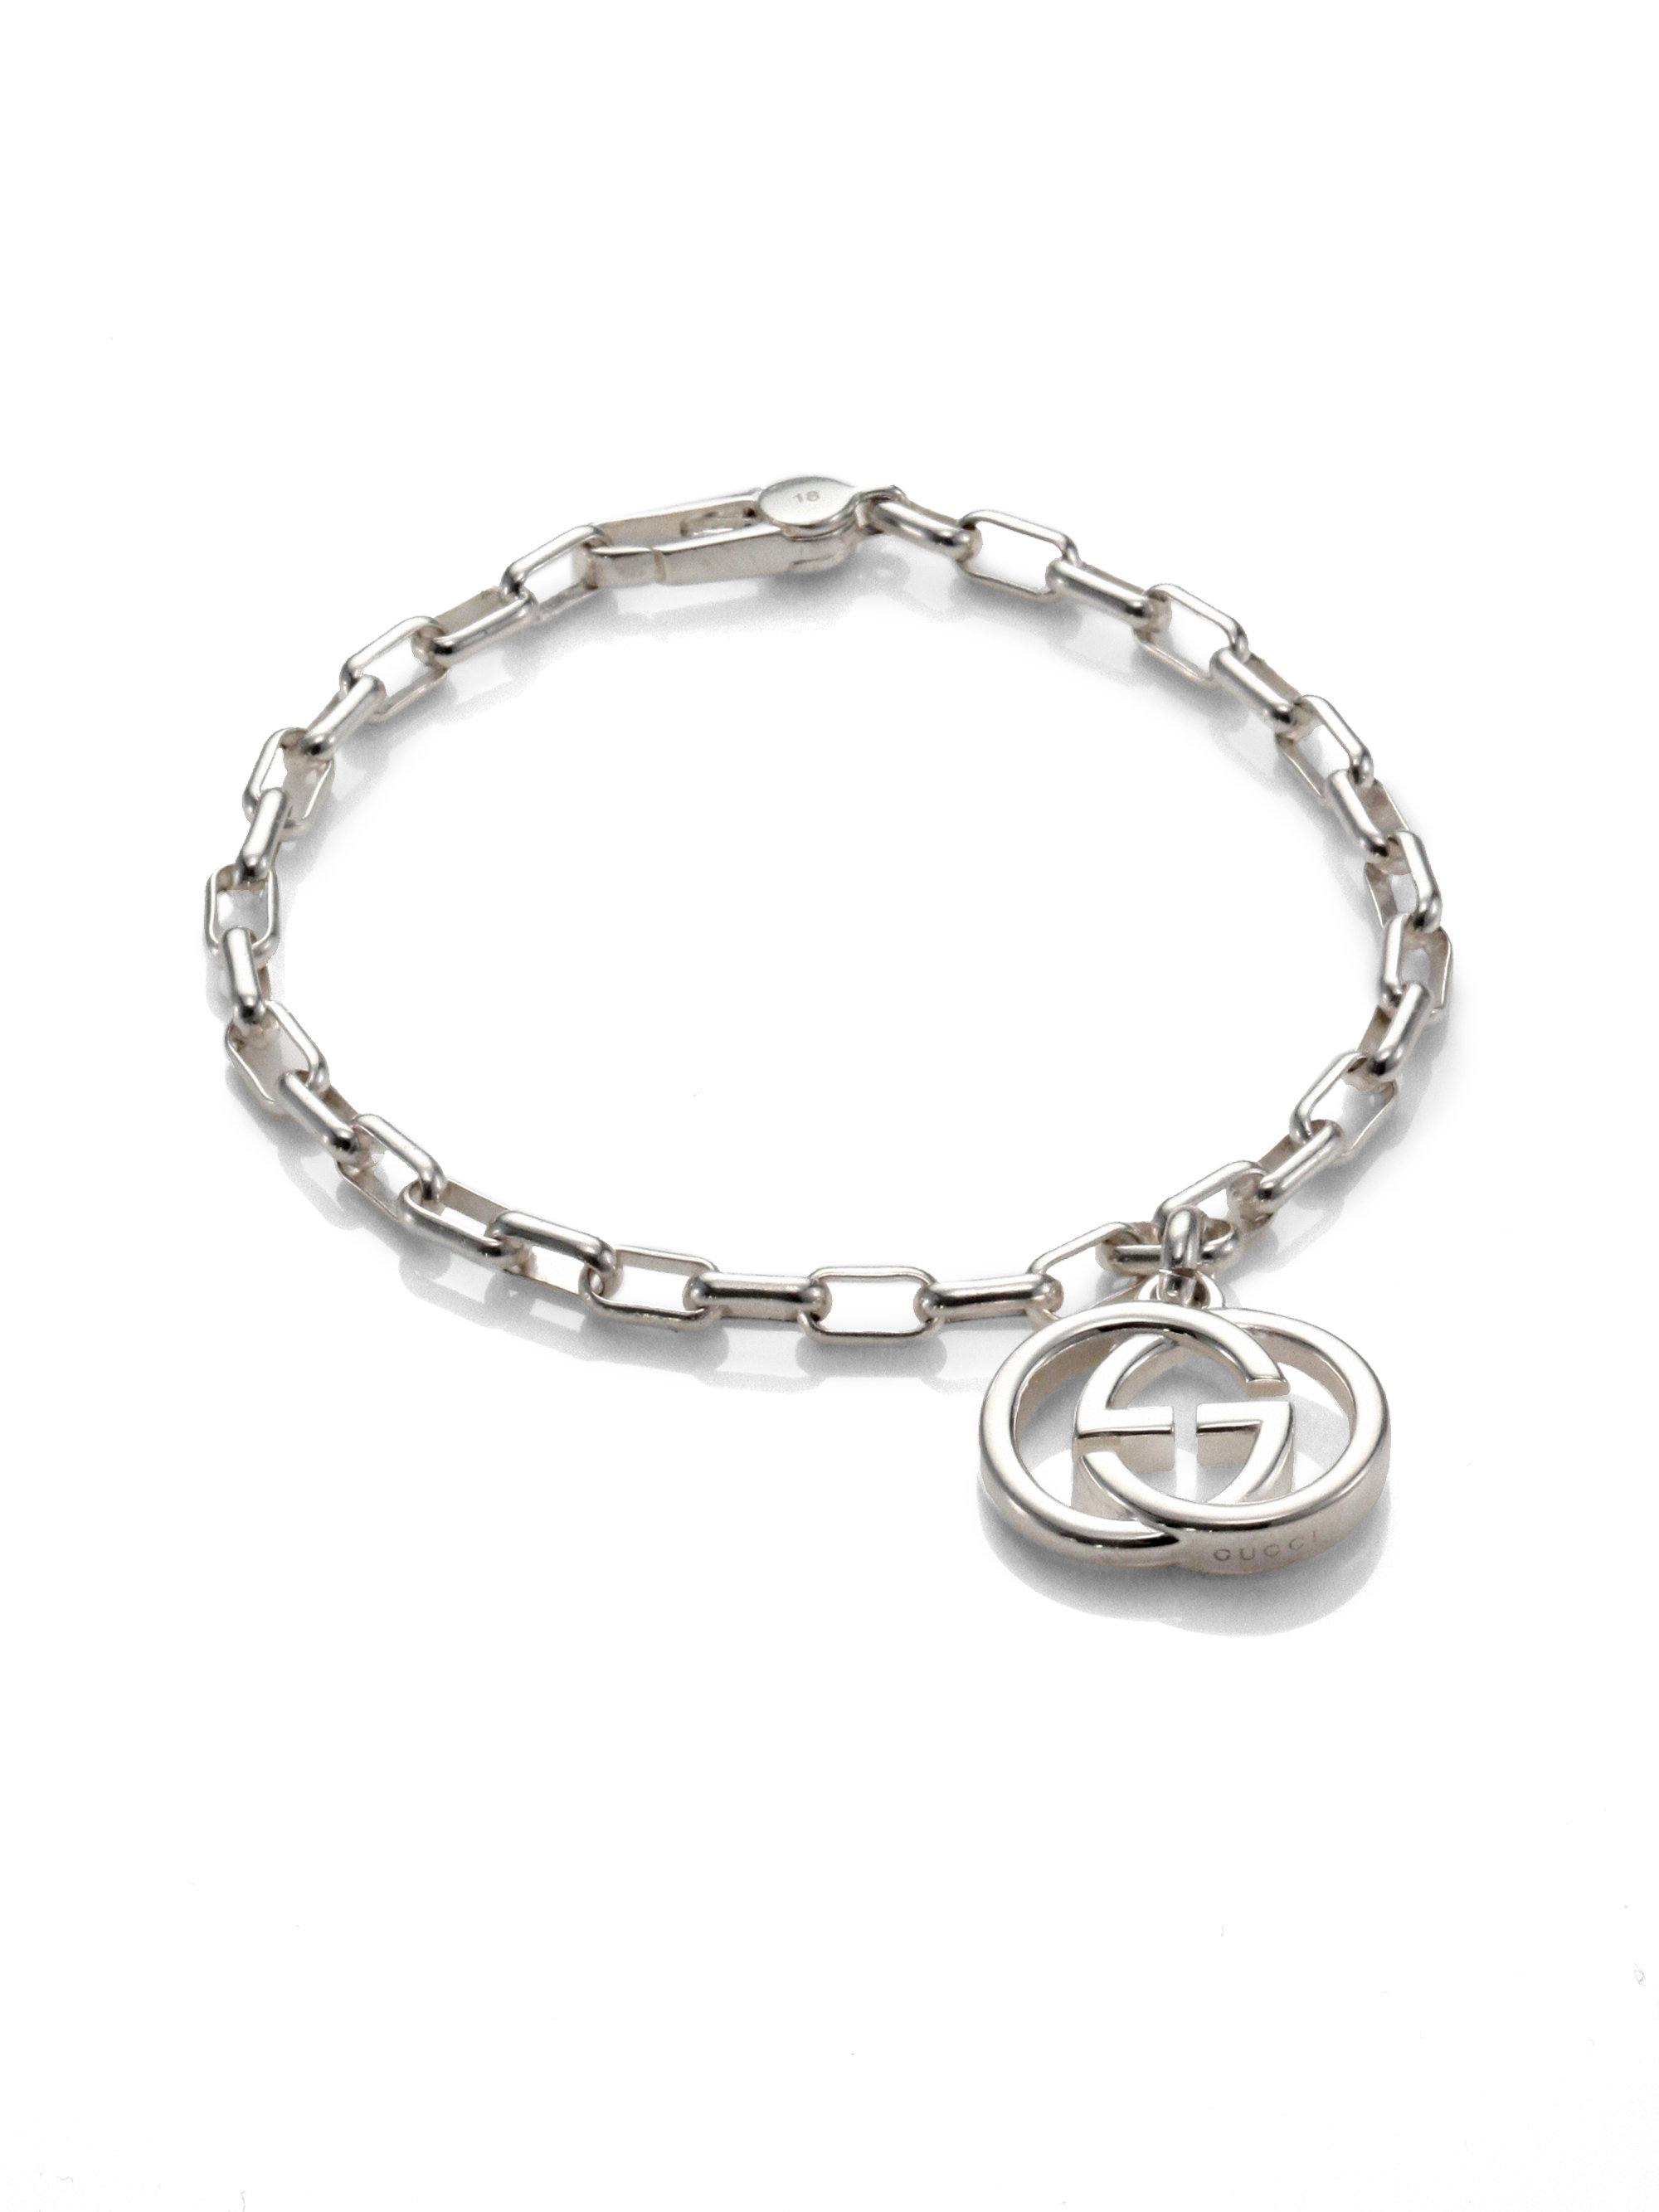 Gucci Interlocking G bracelet in silver - Metallic 9GQef7C